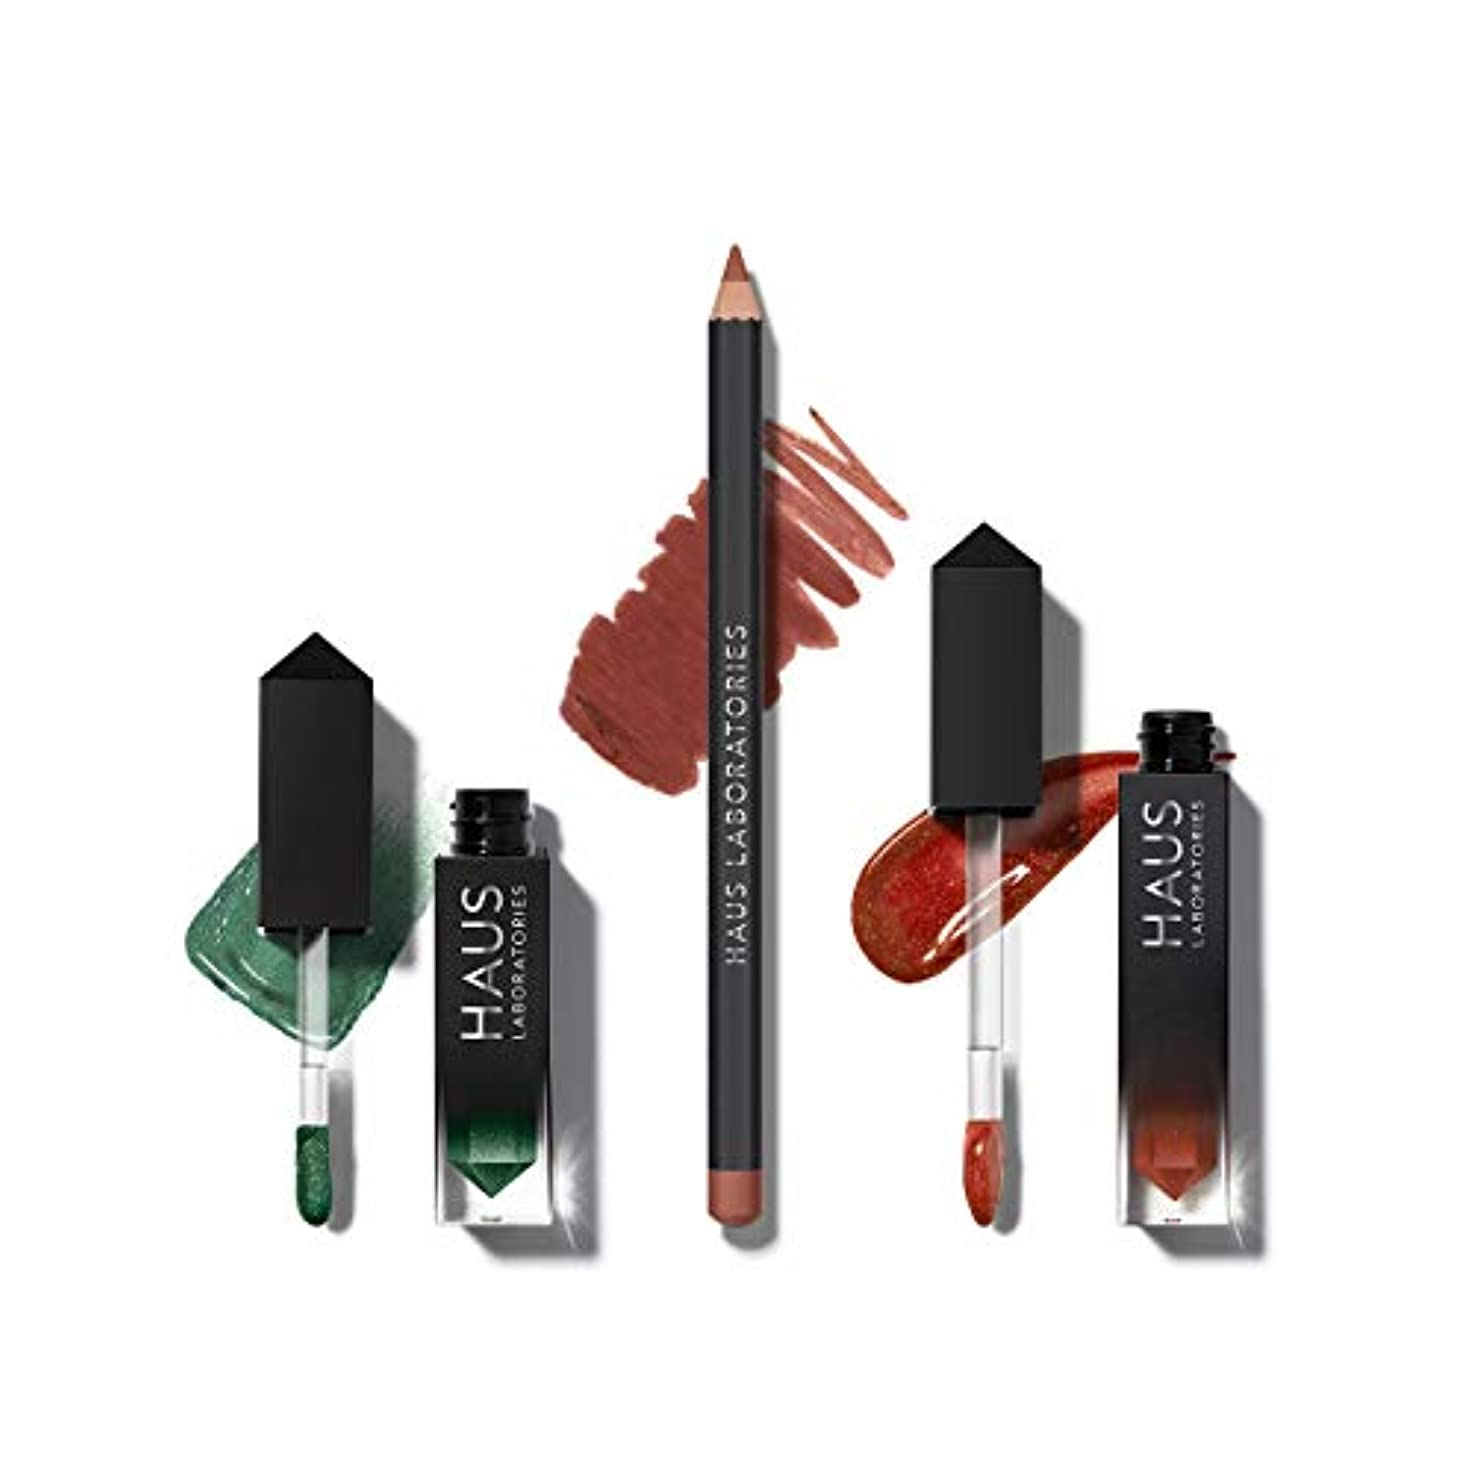 考古学メトリックジョットディボンドンHAUS LABORATORIES HAUS of Collections 3点セット All-Over Color, Lip Gloss, Lip Liner (HAUS of Dynasty )